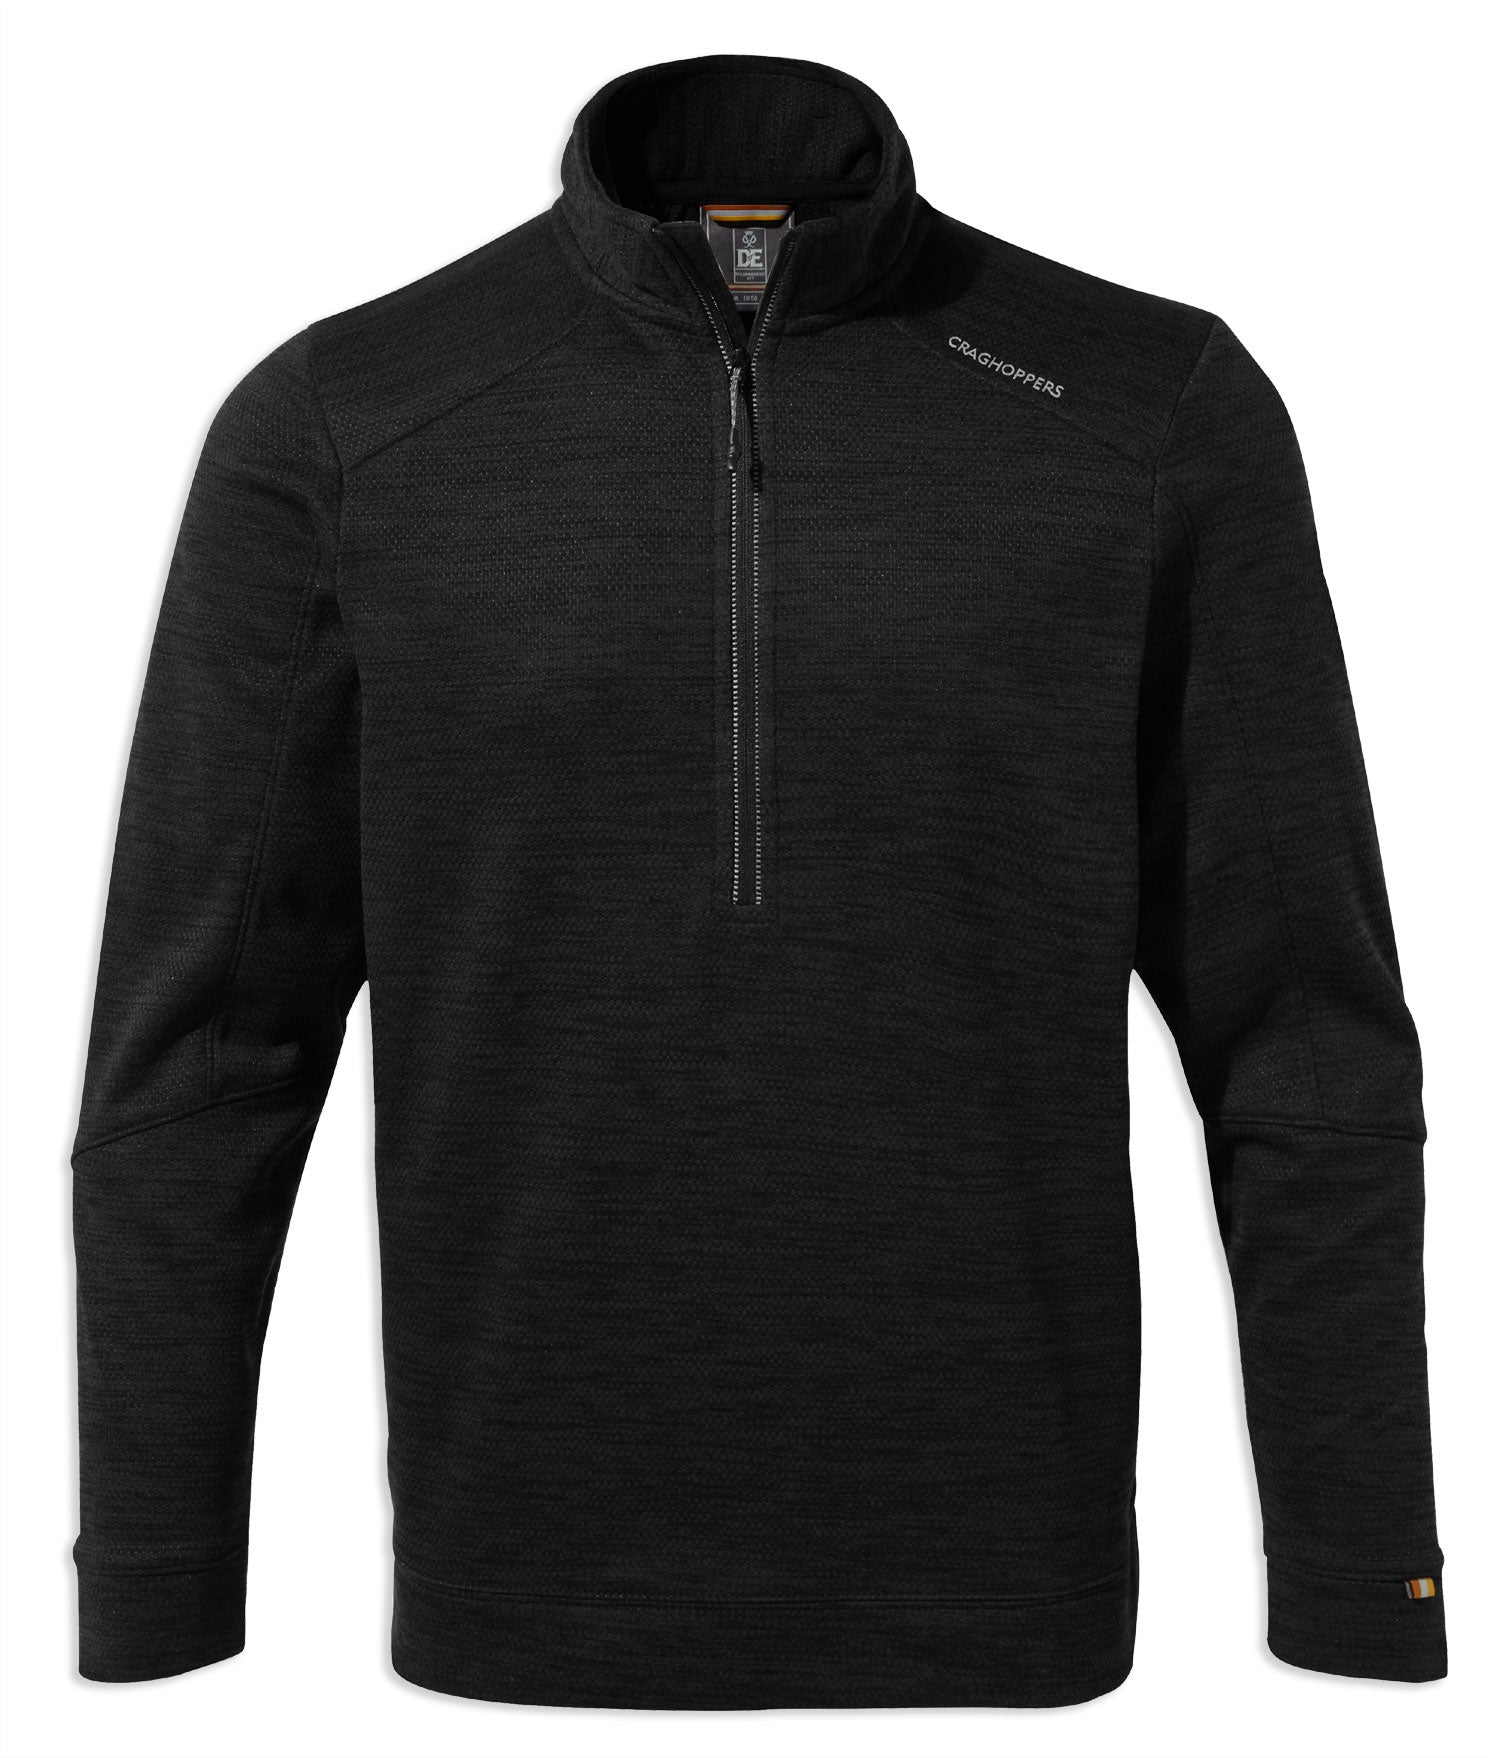 Craghoppers Strata Half Zip Fleece Black